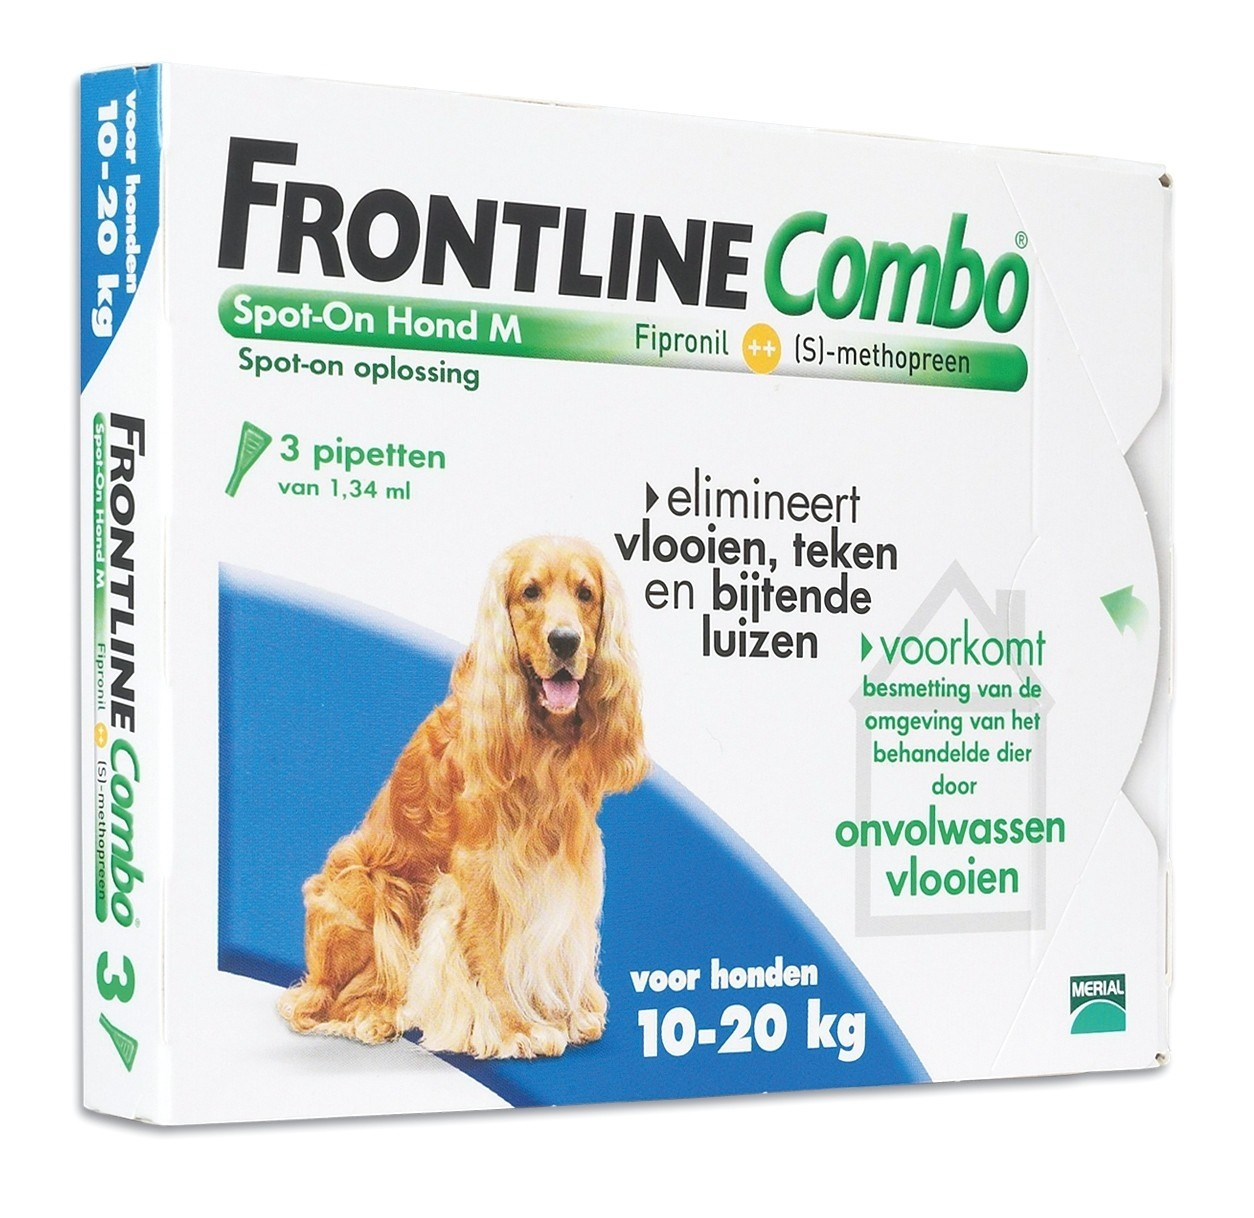 Frontline Combo spot on Hond Medium 10-20kg 3 pipet